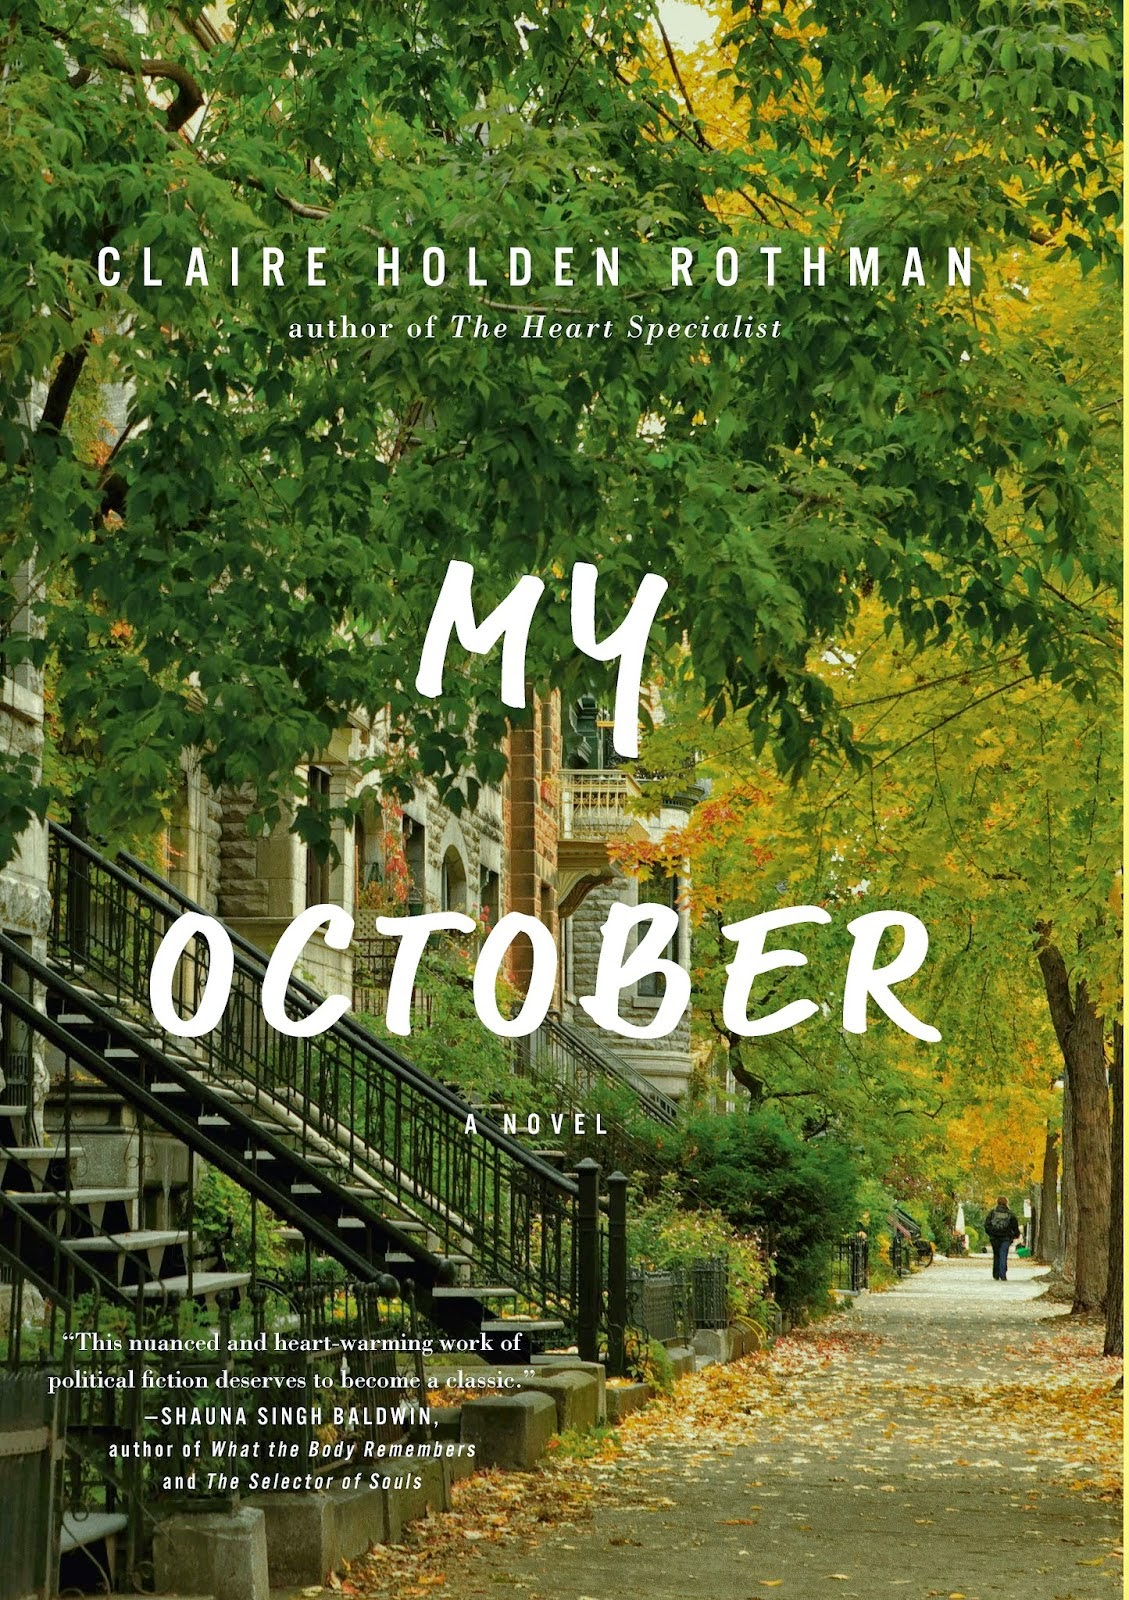 http://discover.halifaxpubliclibraries.ca/?q=title:my%20october